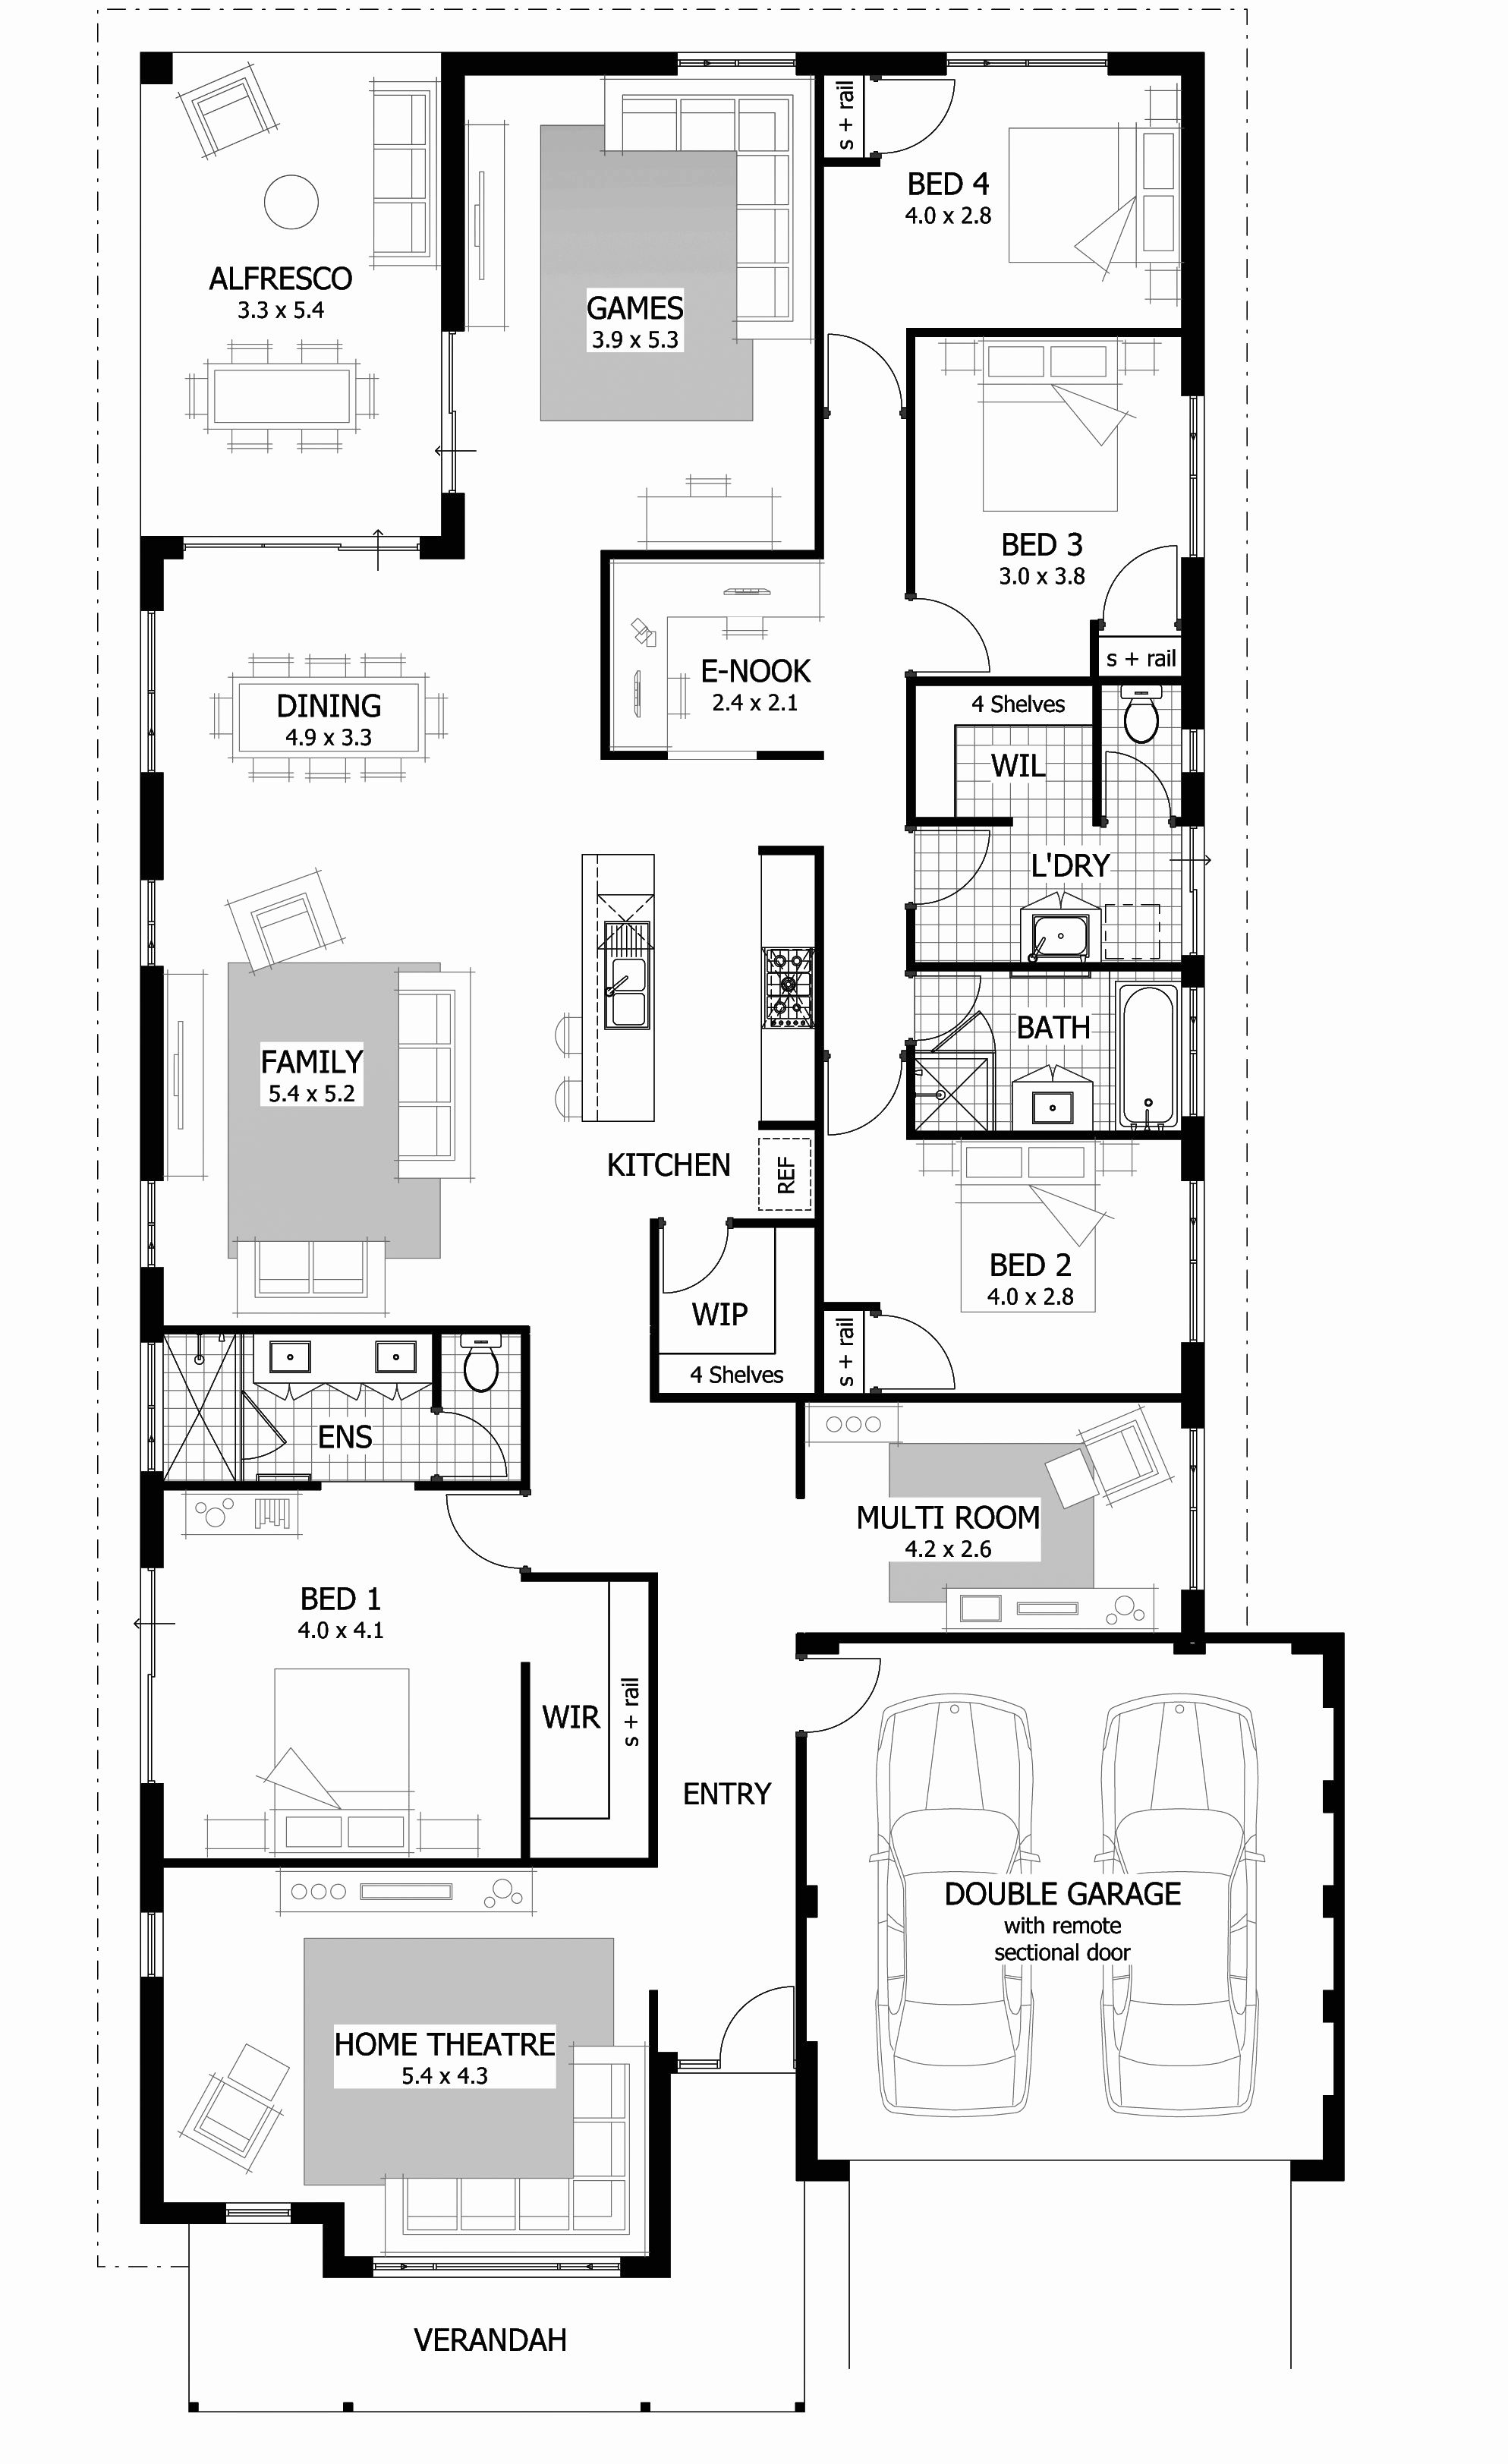 Modern 1 Story House Plans Luxury Three Bedroom Floor Plans Modern 3 Bedroom 3 5 Bath 1 Story House Denah Lantai Rumah Denah Lantai Denah Rumah